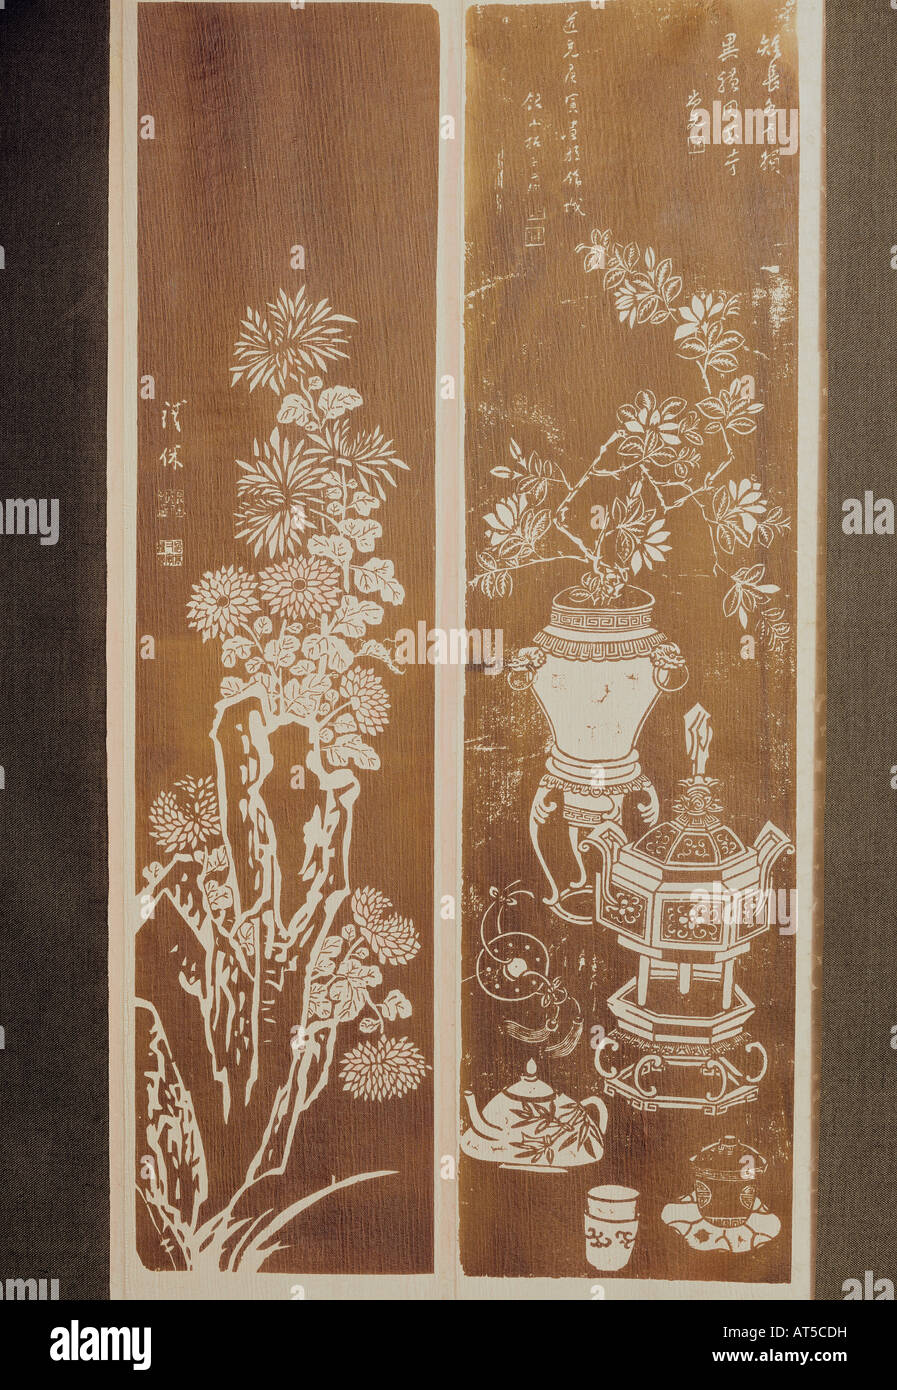 fine arts, China, stonecut, still lifes, left: based on painting by Tsen Huan, circa 1600, height 130 cm, right: - Stock Image